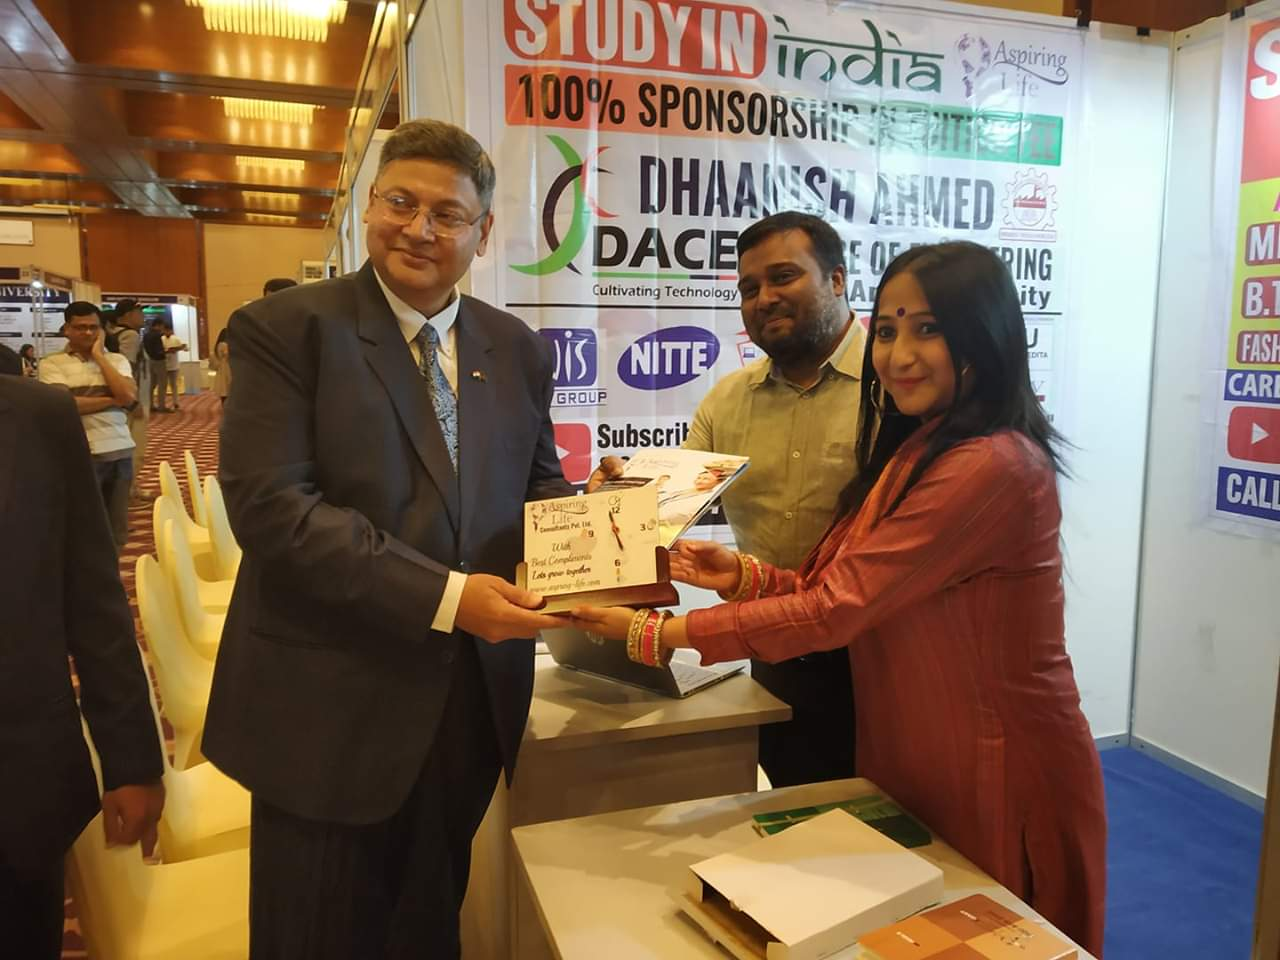 INDSAT Training program being launched for Scholarship to Study in India